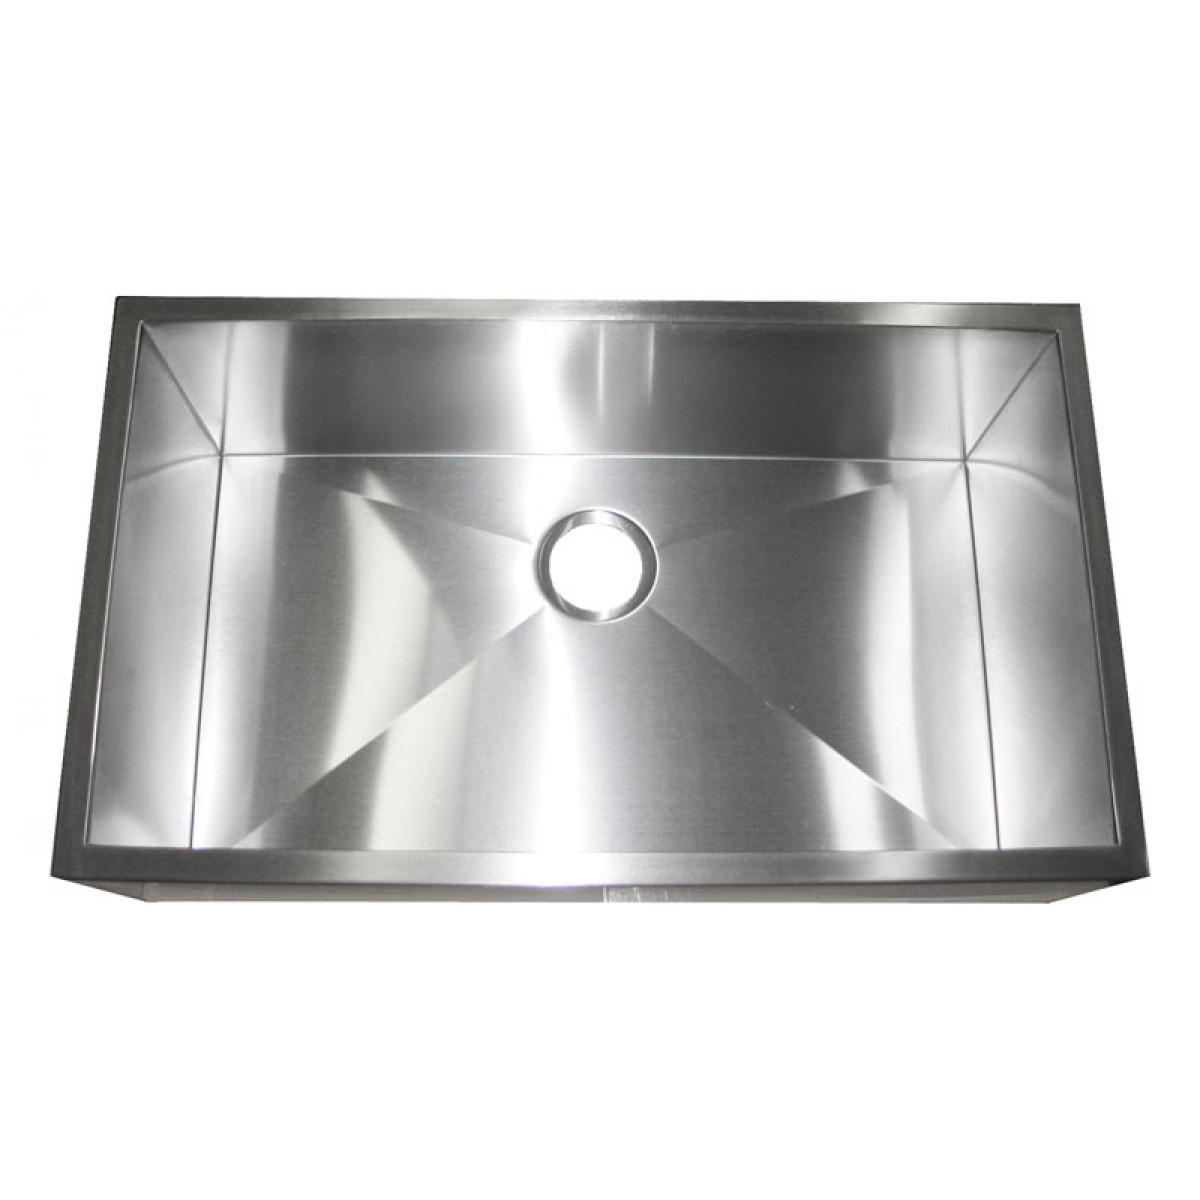 stainless-steel-apron-front-kitchen-sink-af-920332-1.jpg